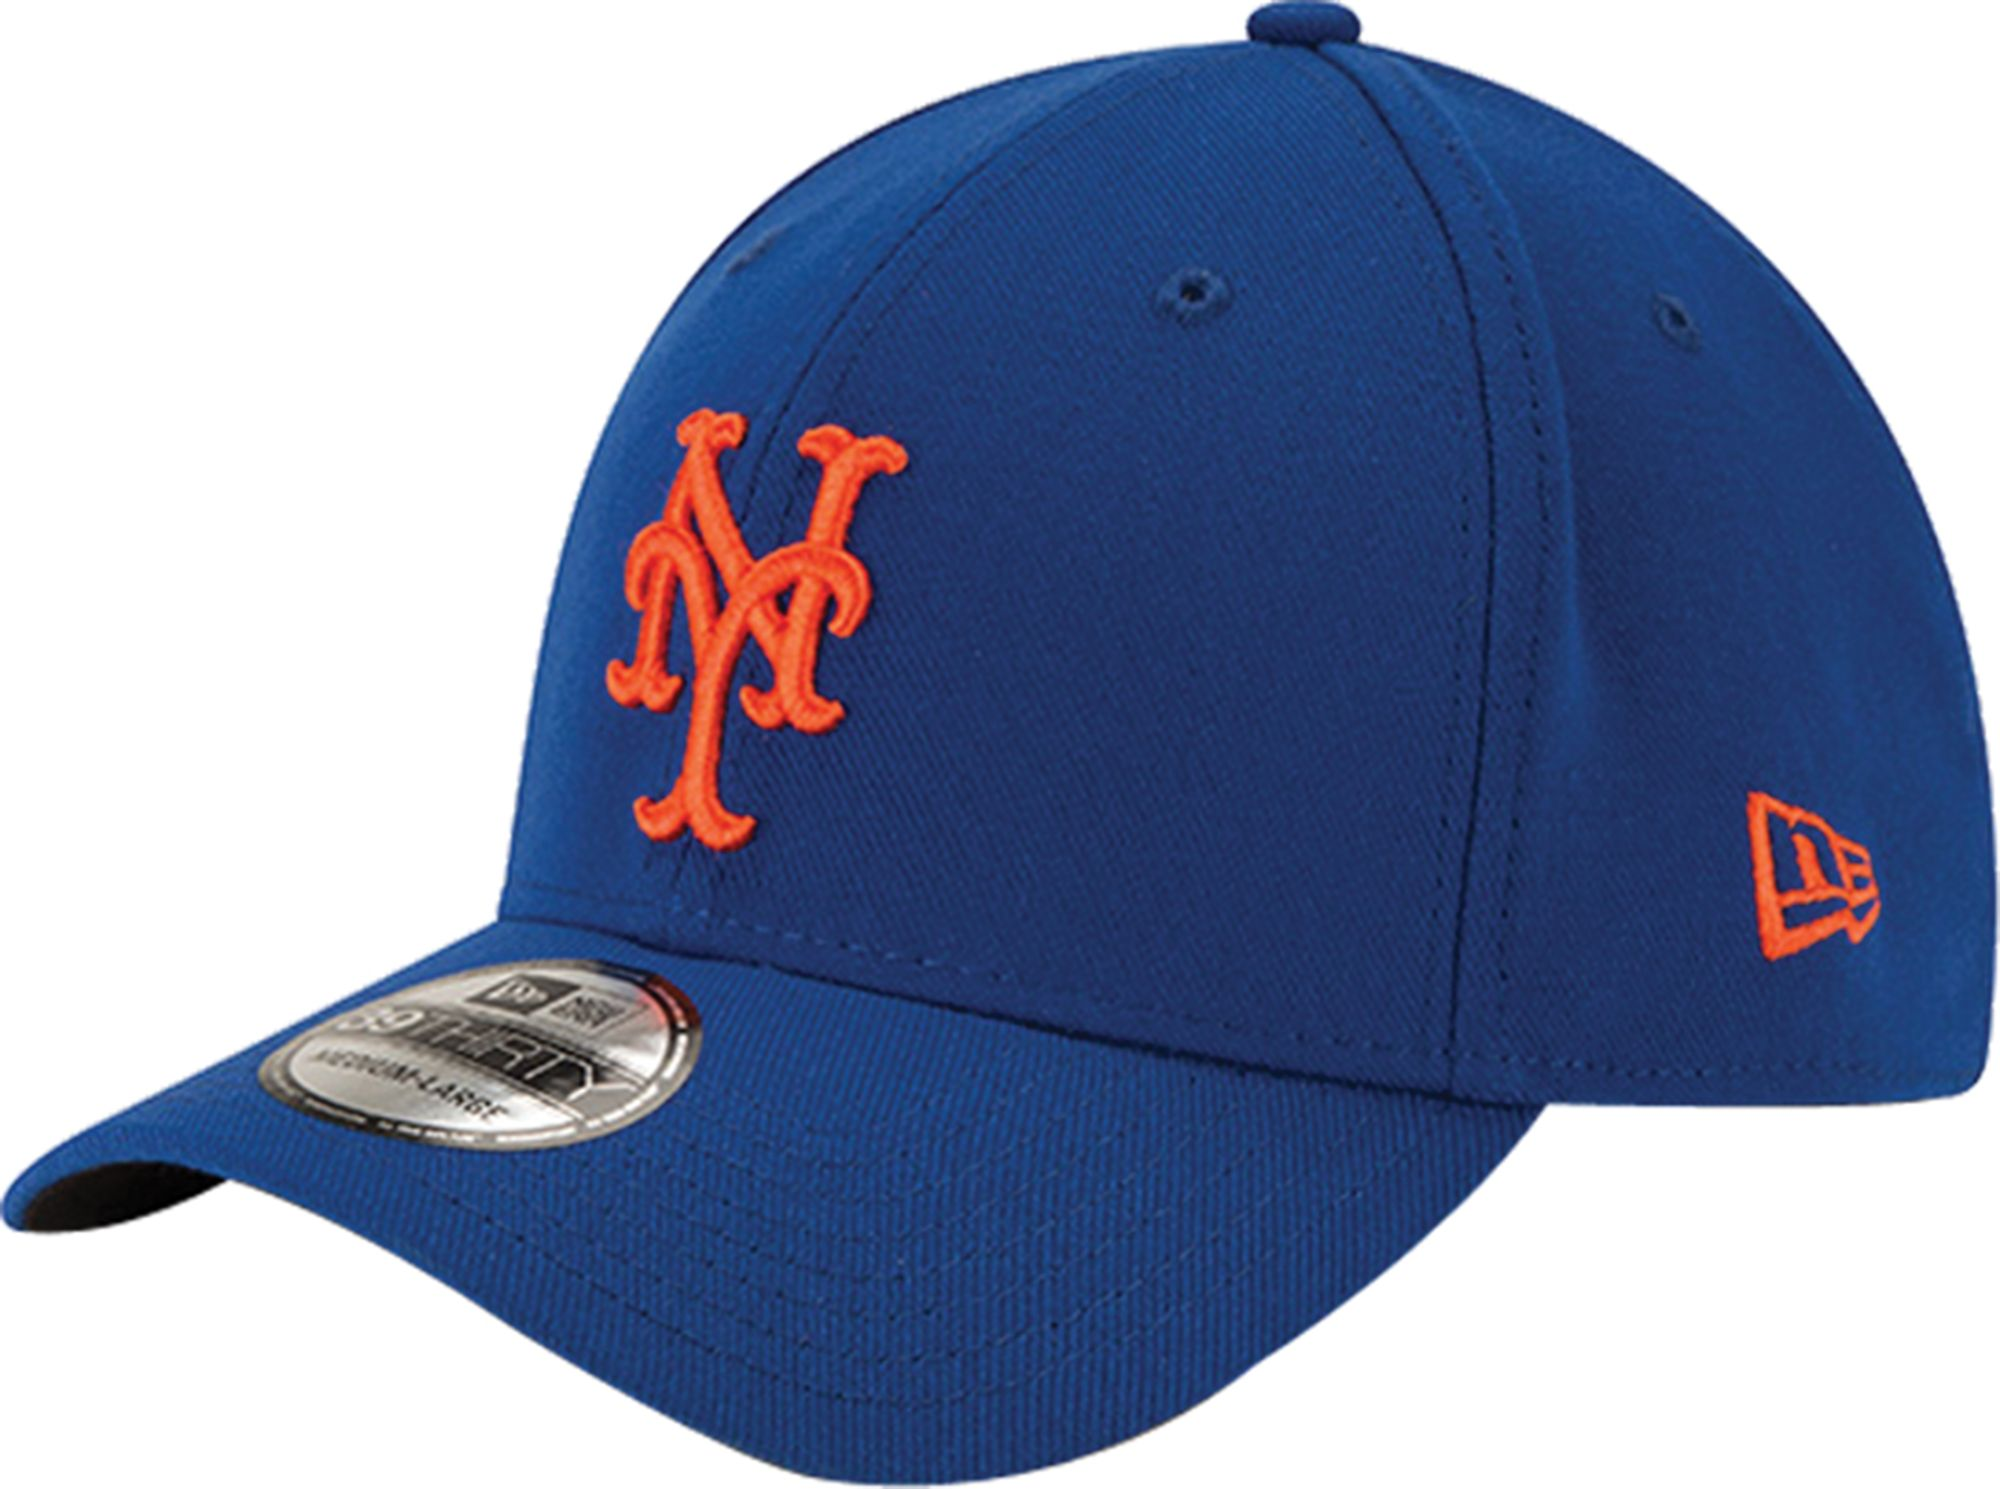 buy popular 56ca1 f7ddd Alternate Images of. Product Image.  29.99. Sports Team  New York Mets